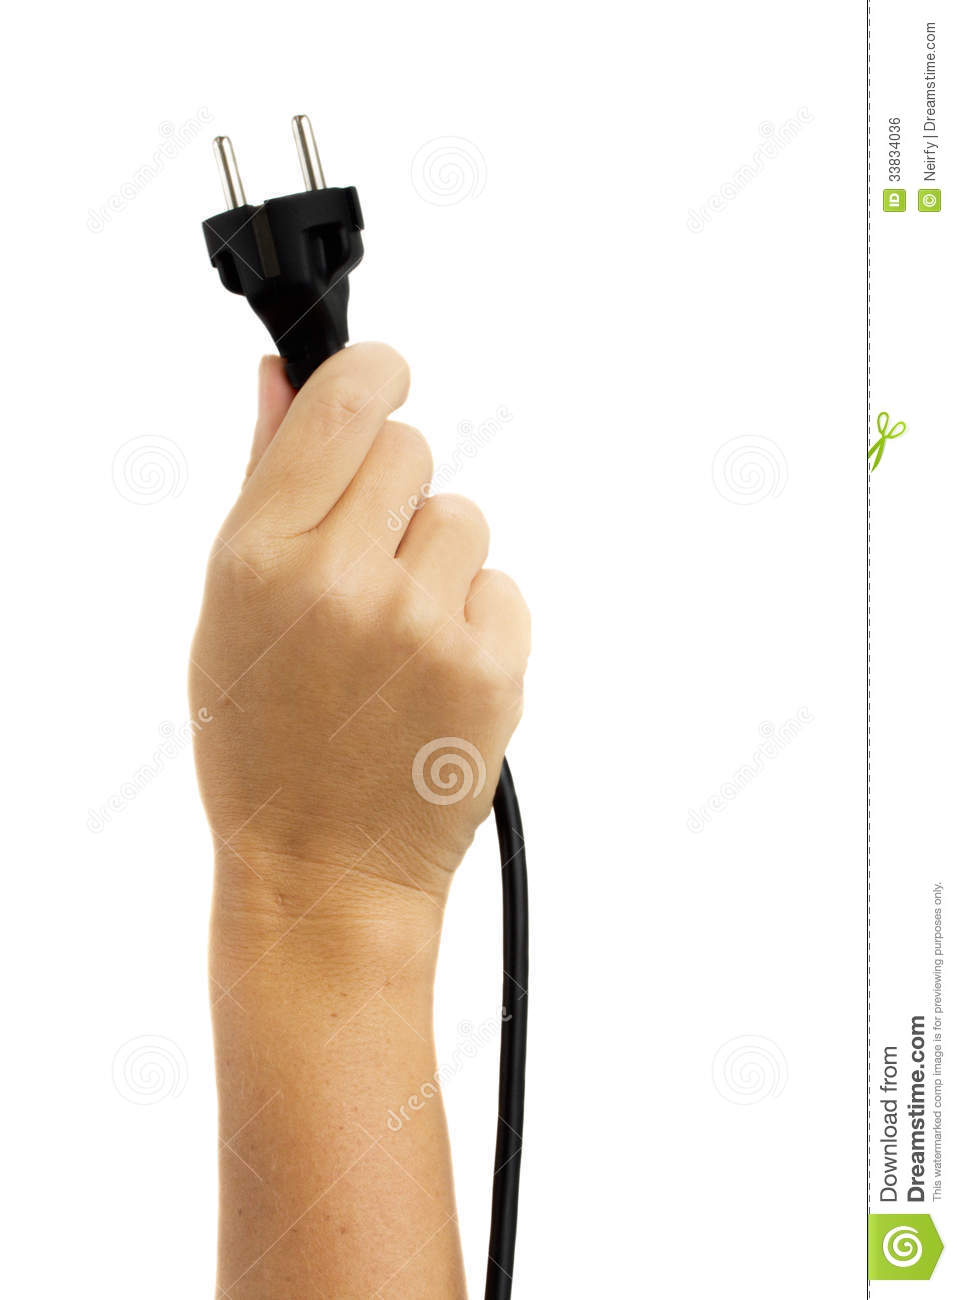 hand-holding-electric-plug-isolated-white-background-33834036  Wire Connector Plug on wire port connectors, wire tubing connectors, wire connector types, wire blade connectors, easy wire connectors, appliance wire connectors, wire lock connectors, romex wire connectors, wire post connectors, wire plug wireless, wire rod connectors, wire connectors product, wire splice connectors, wire clip connectors, industrial wire connectors, wire plug covers, best wire connectors, wire cage connectors, wire strain relief connectors, wire lug connectors,